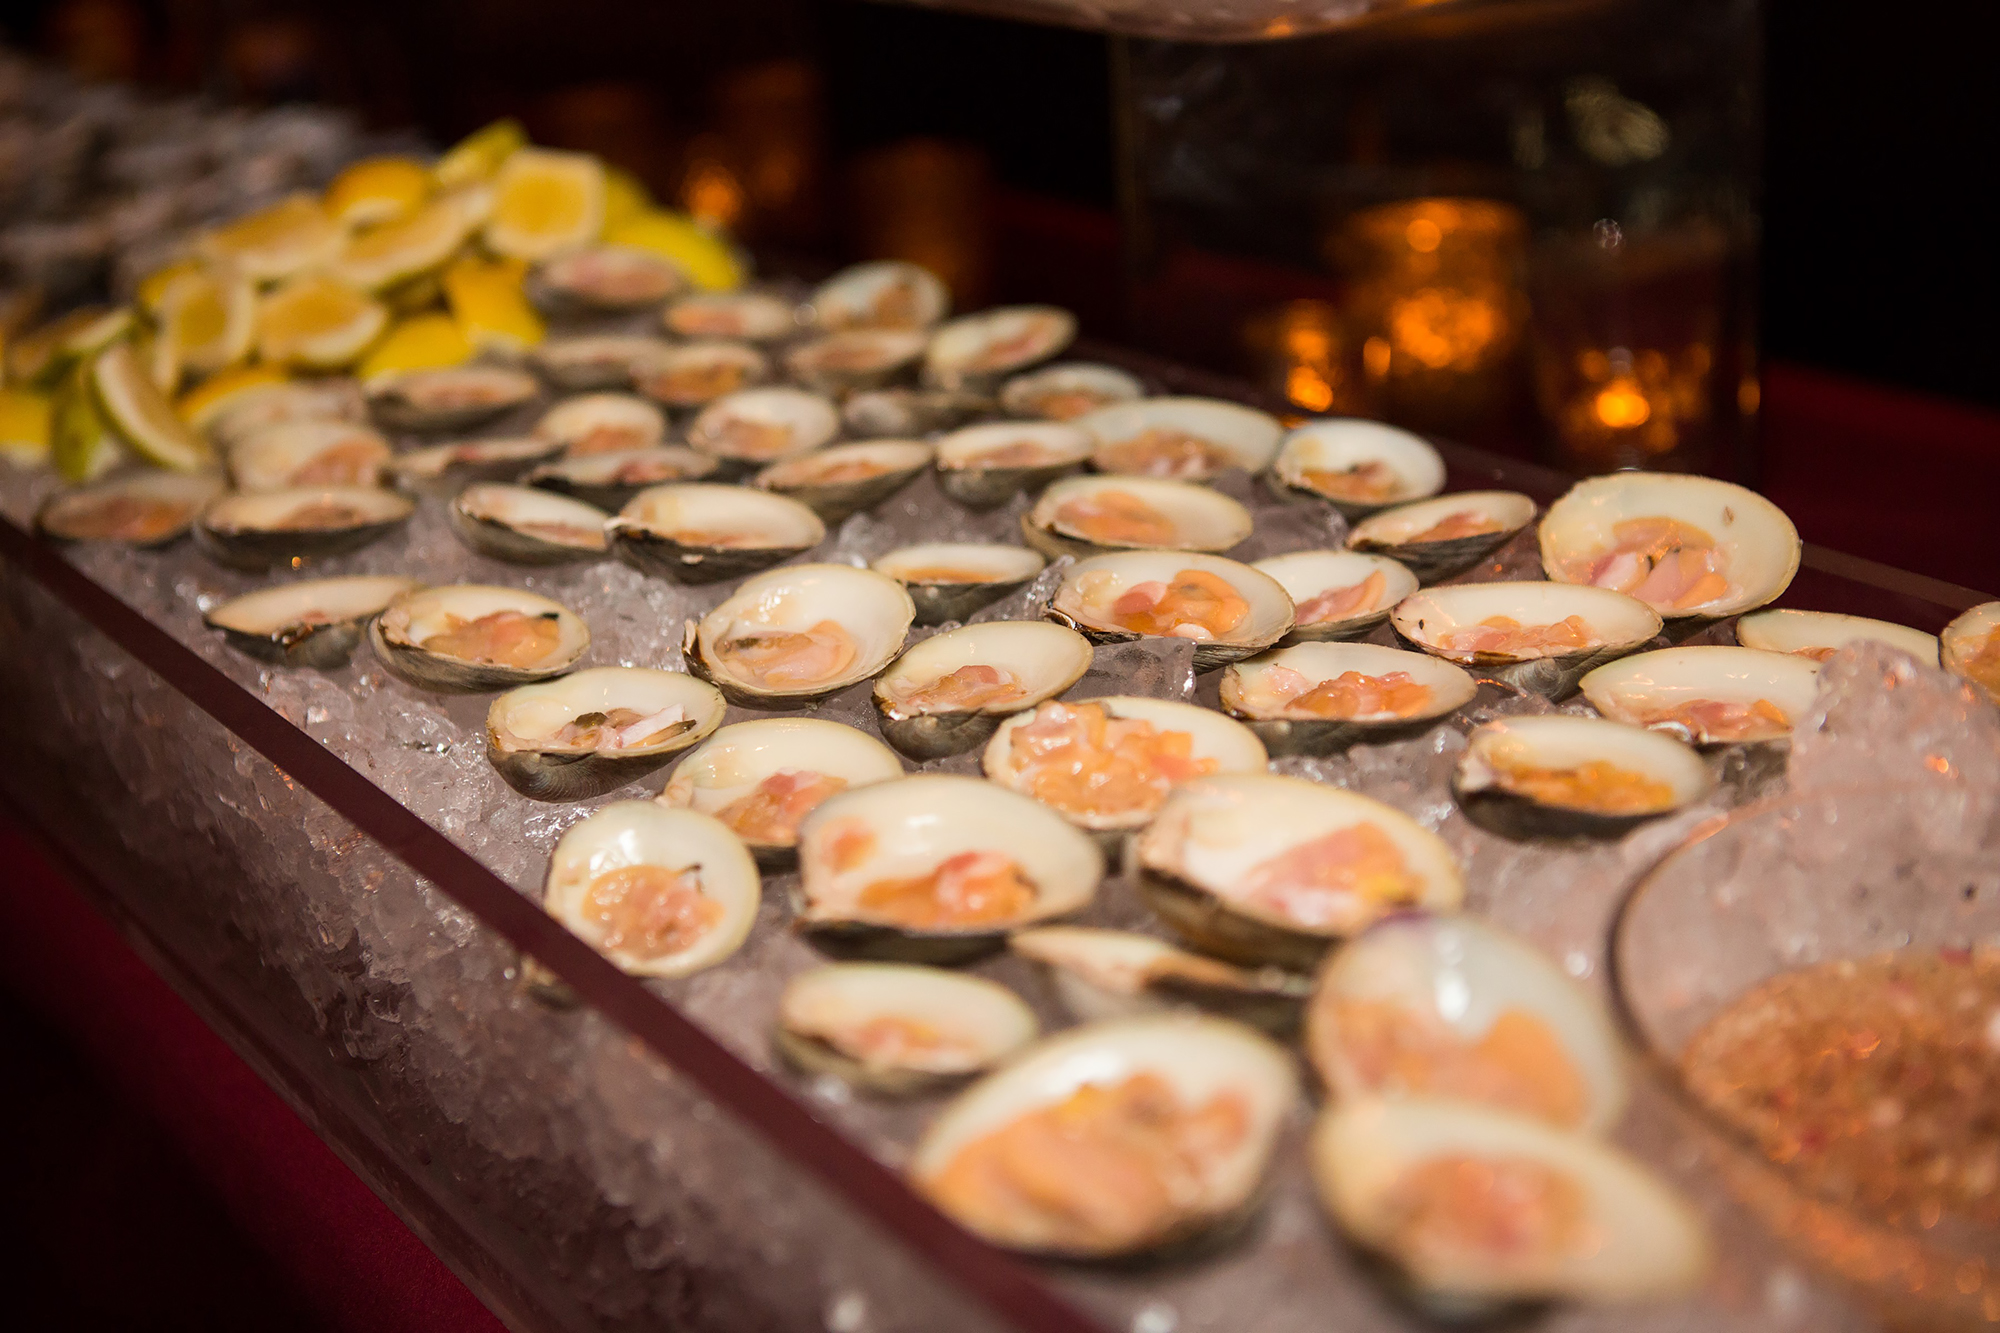 Oysters at raw bar station